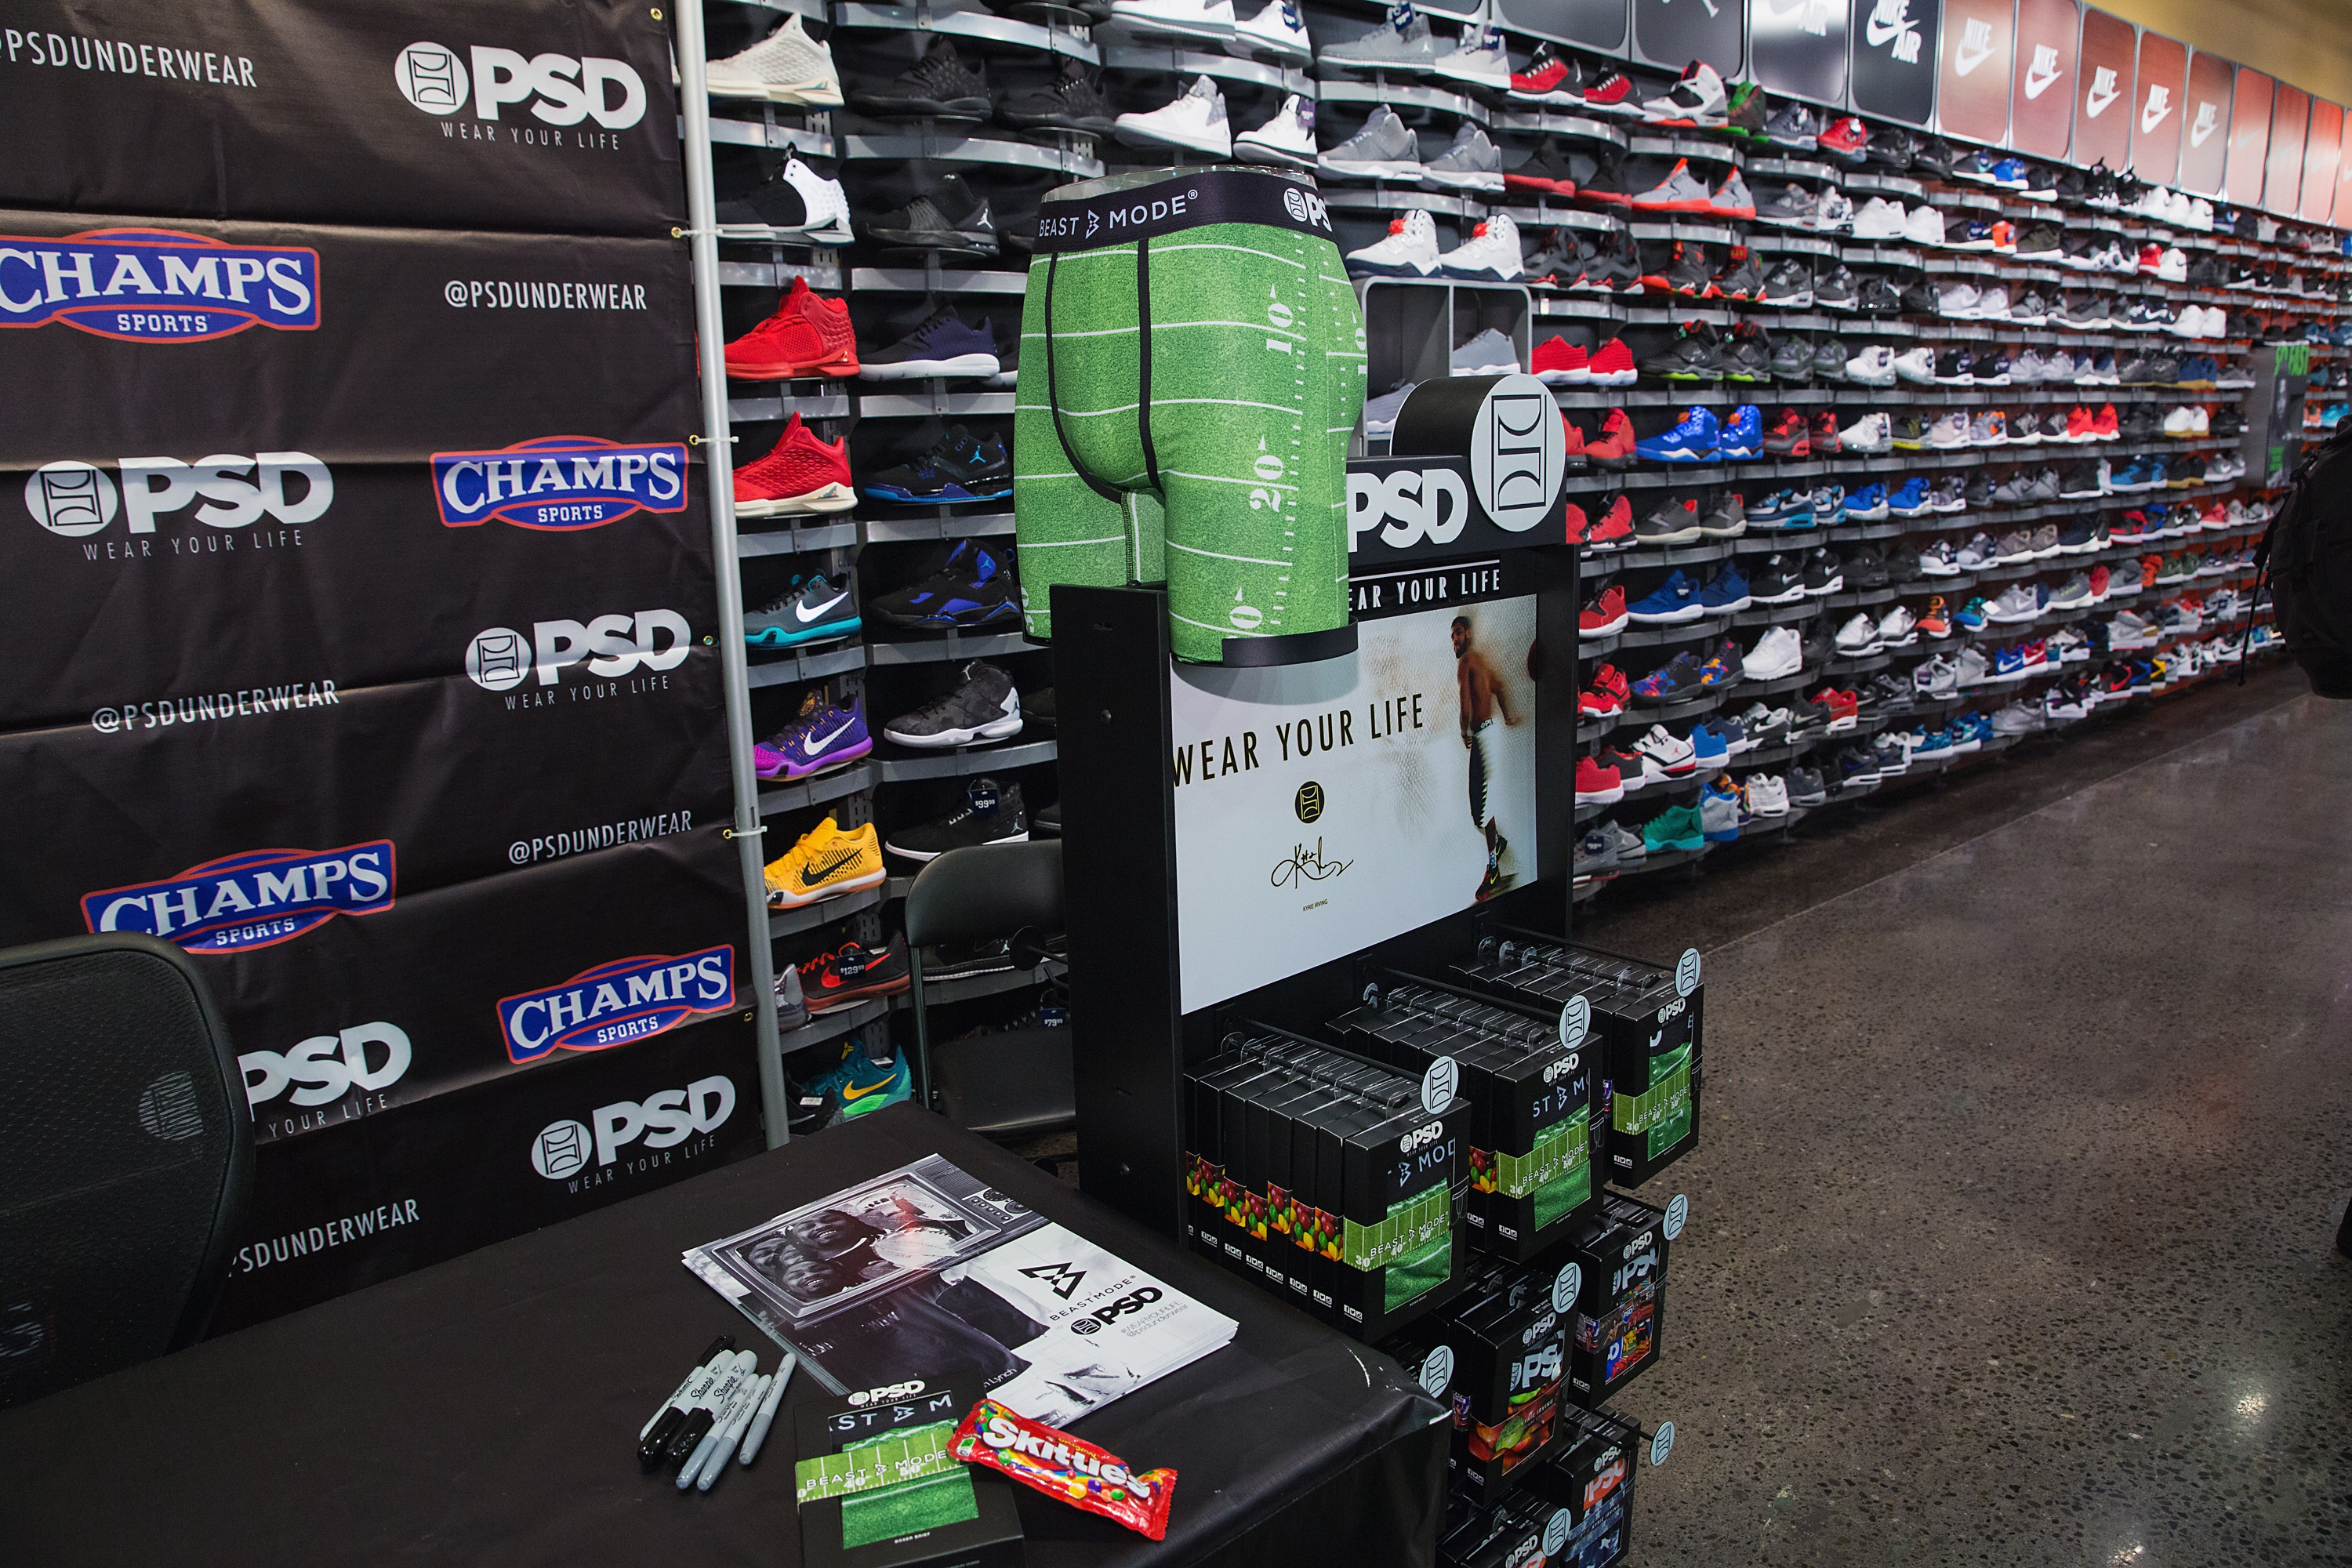 BeastMode X PSD Instore Signing